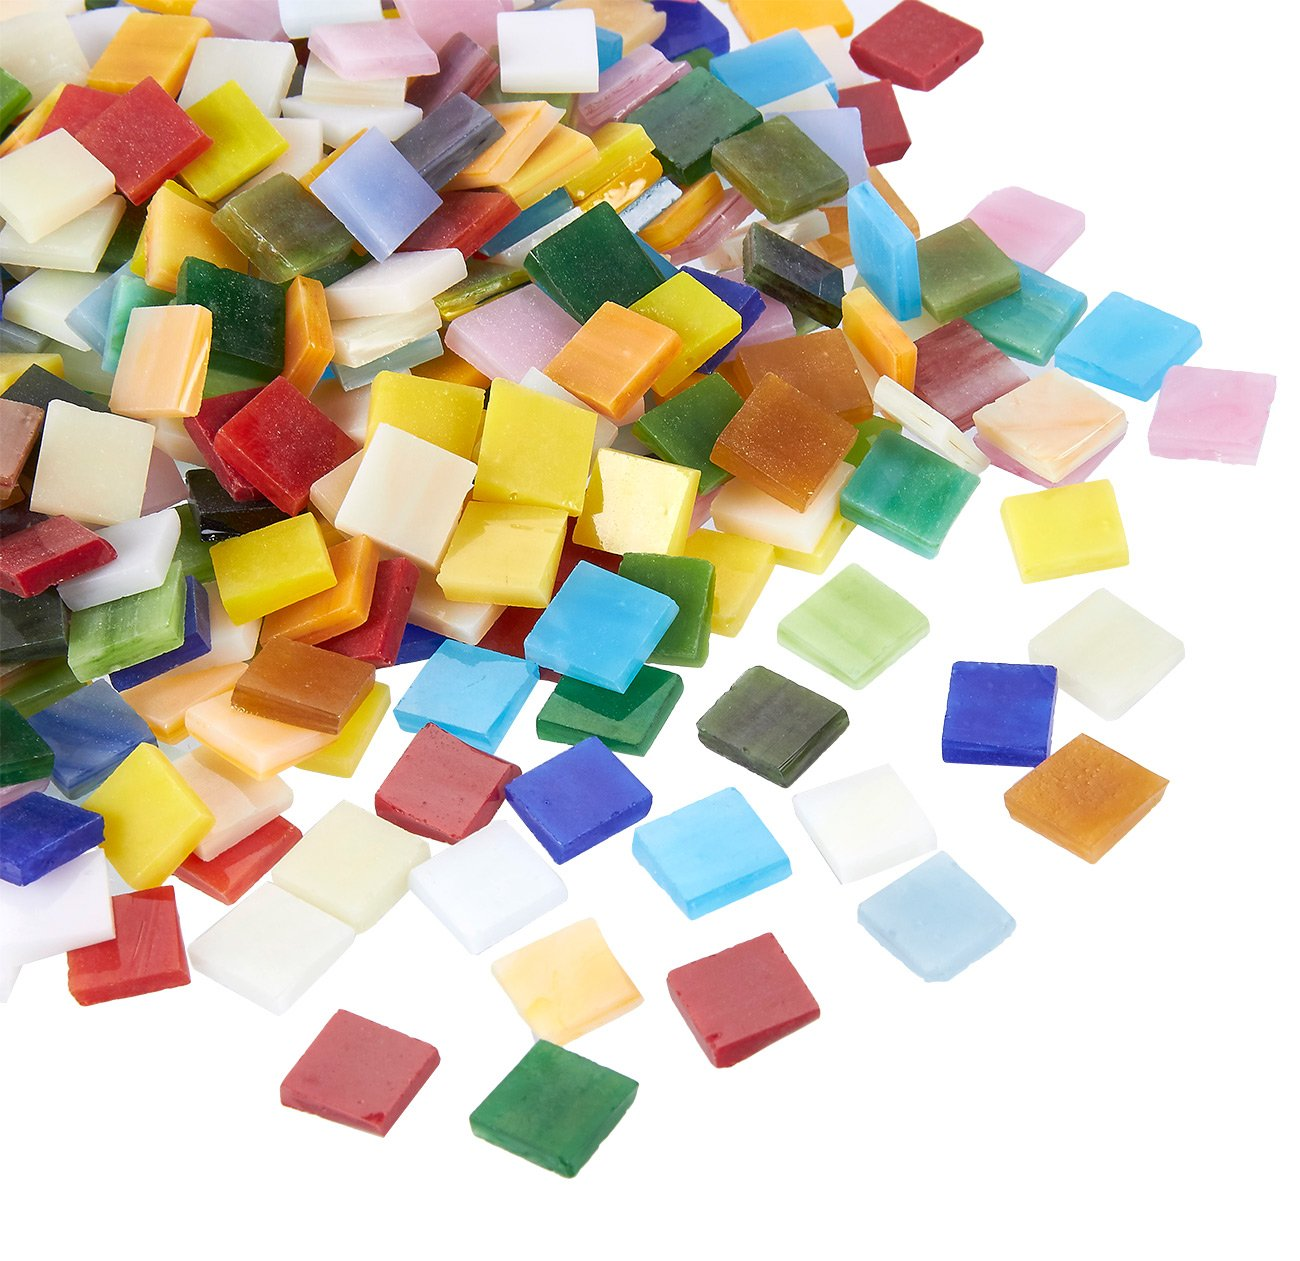 700-Pack Glass Mosaic Pieces for Home Decoration Craft Supplies Multicolored DIY Art Projects Diamond Shaped 0.78 x 0.47 x 0.1 Inches Juvale Mosaic Tiles